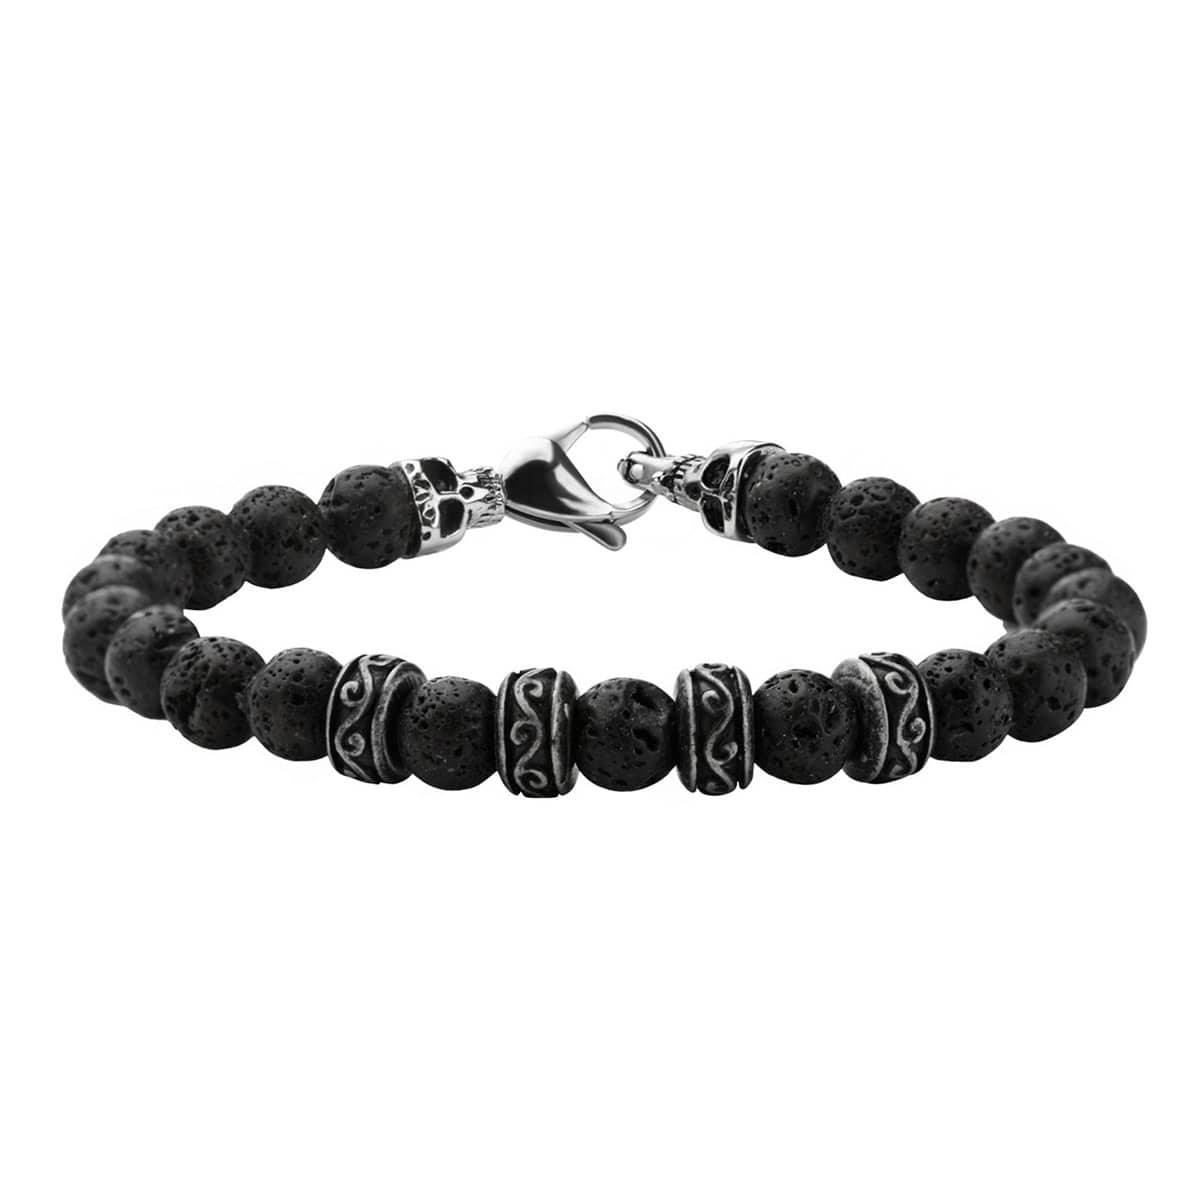 Silver Stainless Steel with Black Molten Lava 8mm Bead Skull Bracelet